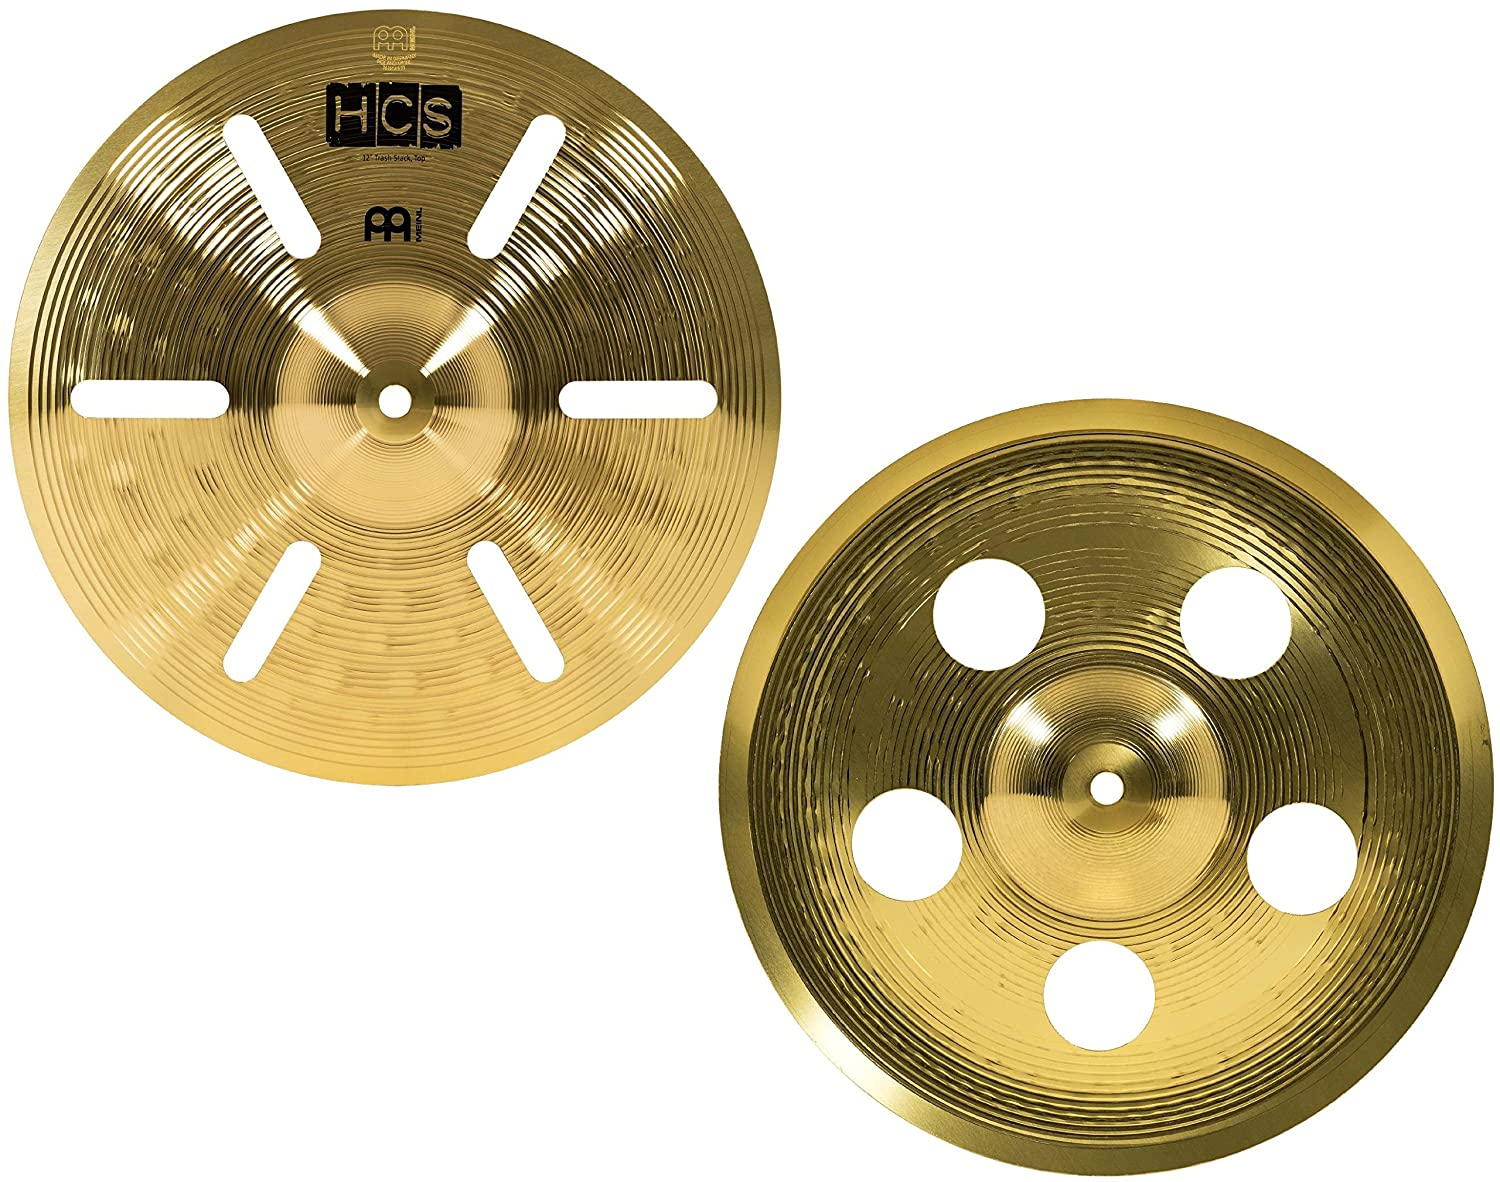 Meinl Cymbals hcs12trs Trash Stack